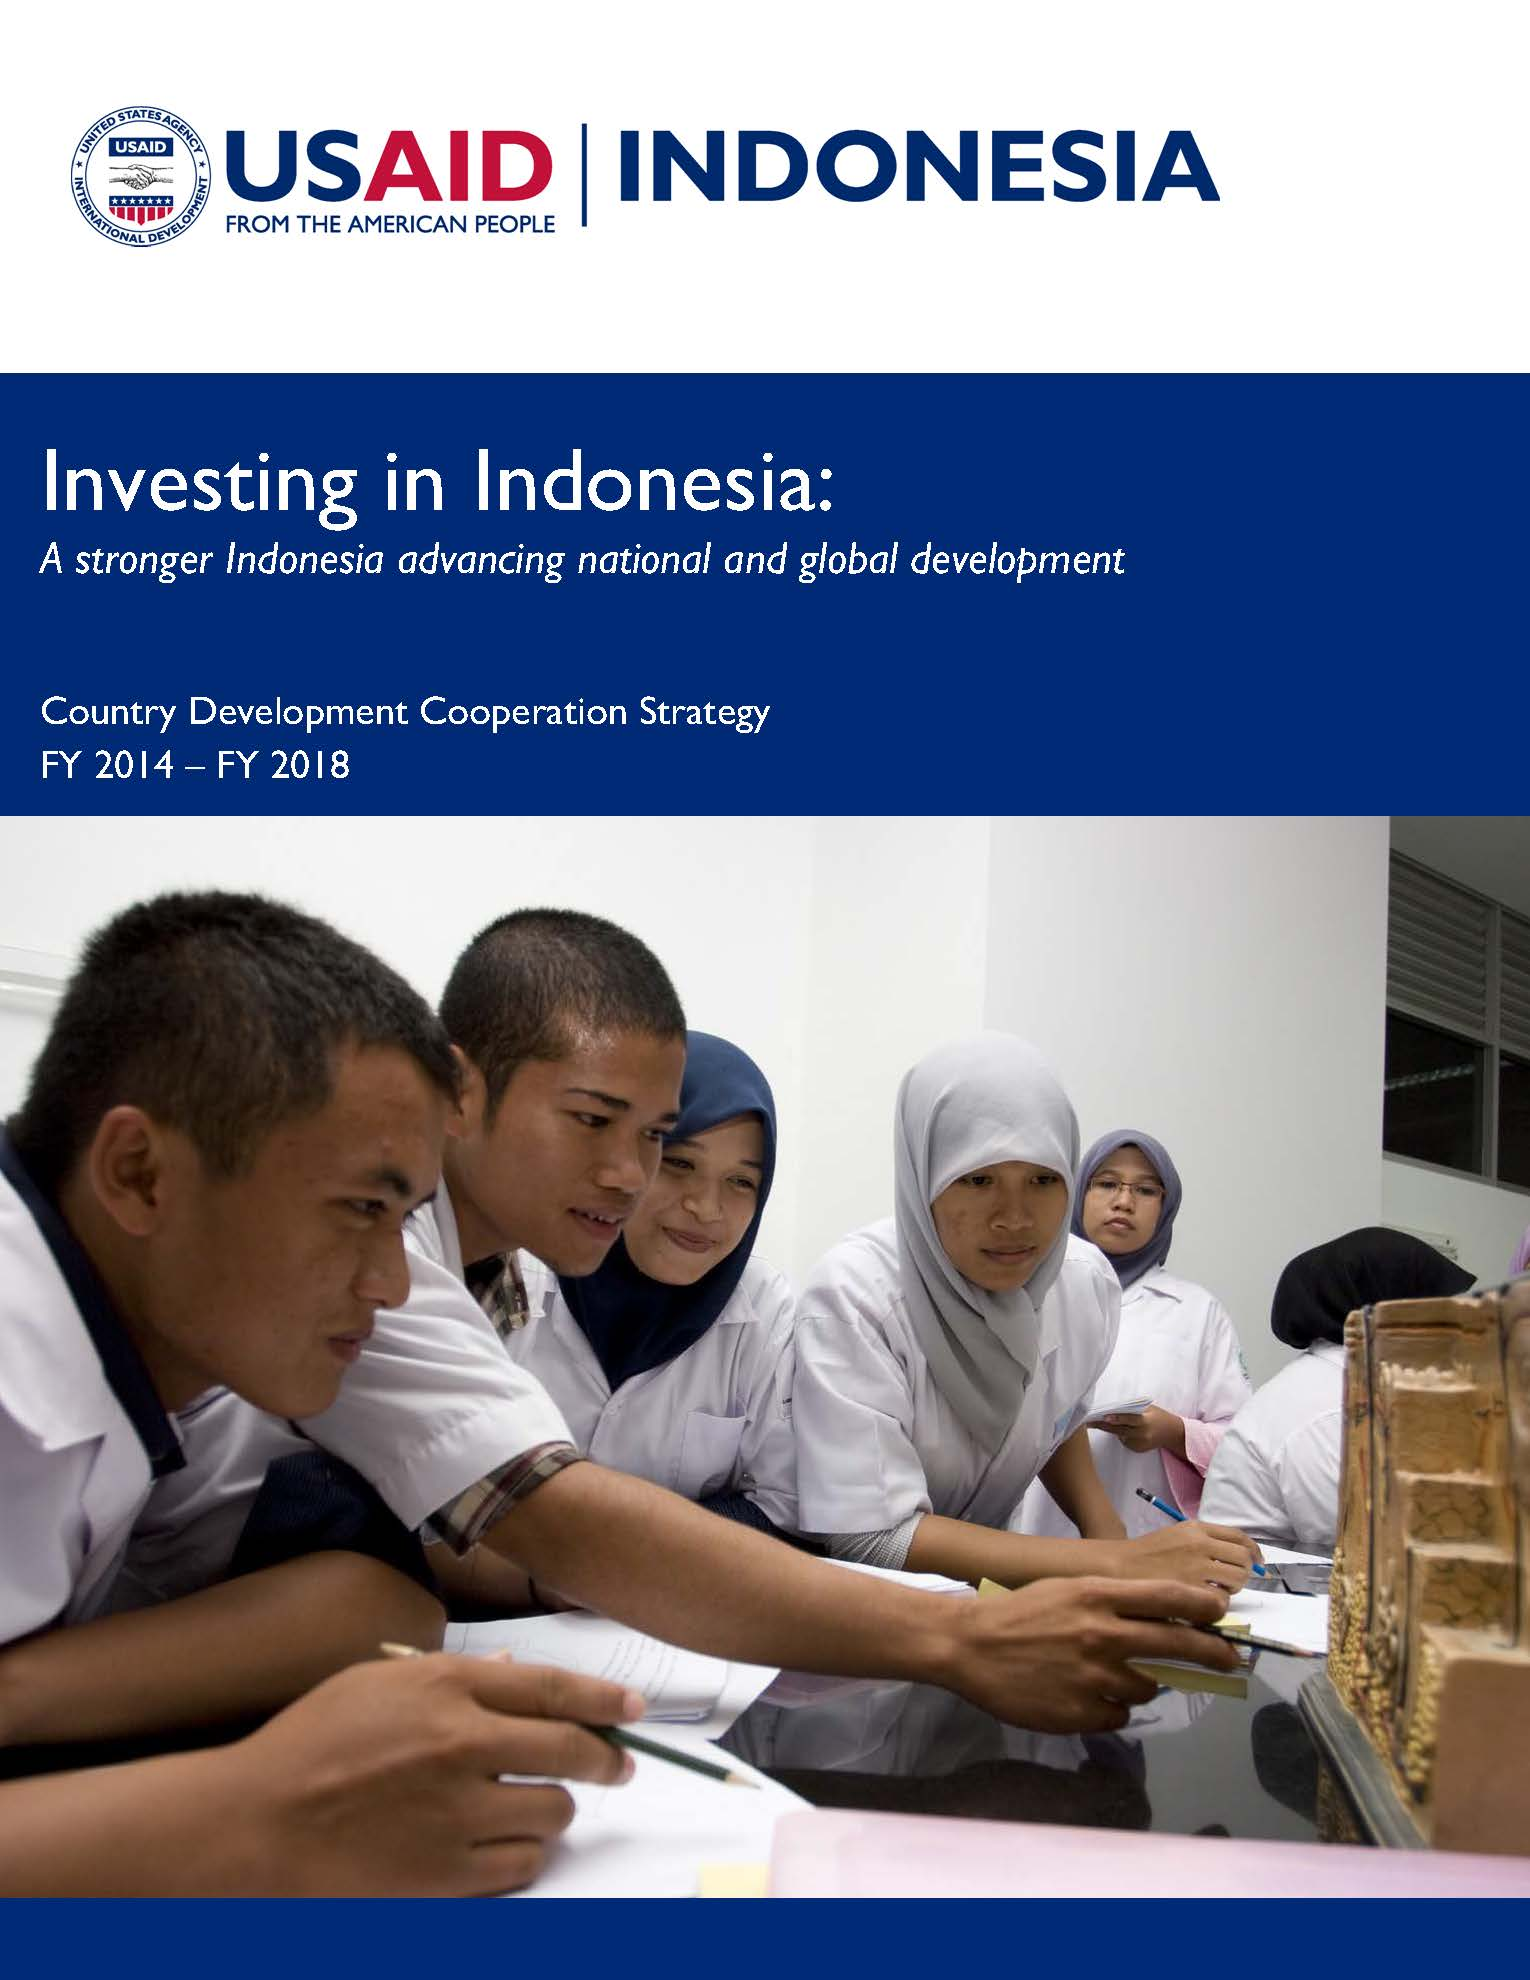 Indonesia Country Development Cooperation Strategy 2014-2018